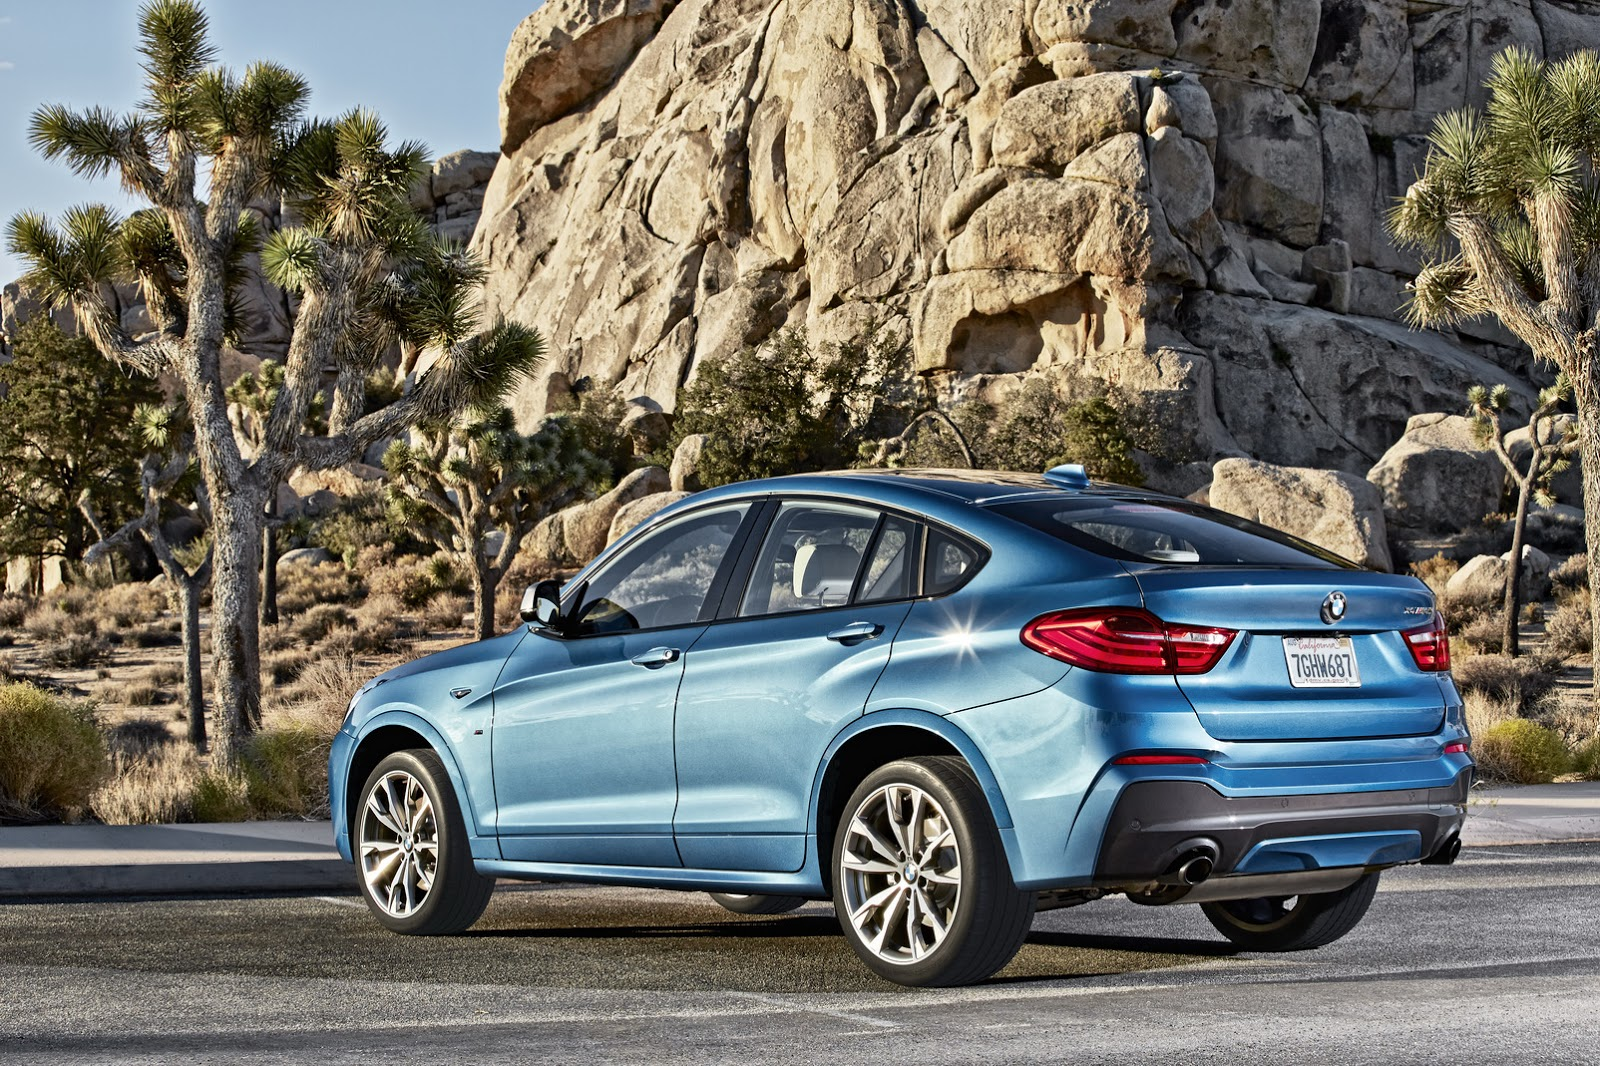 bmw x4 m40i debuts with 360 hp 3 liter turbo and angry looks autoevolution. Black Bedroom Furniture Sets. Home Design Ideas